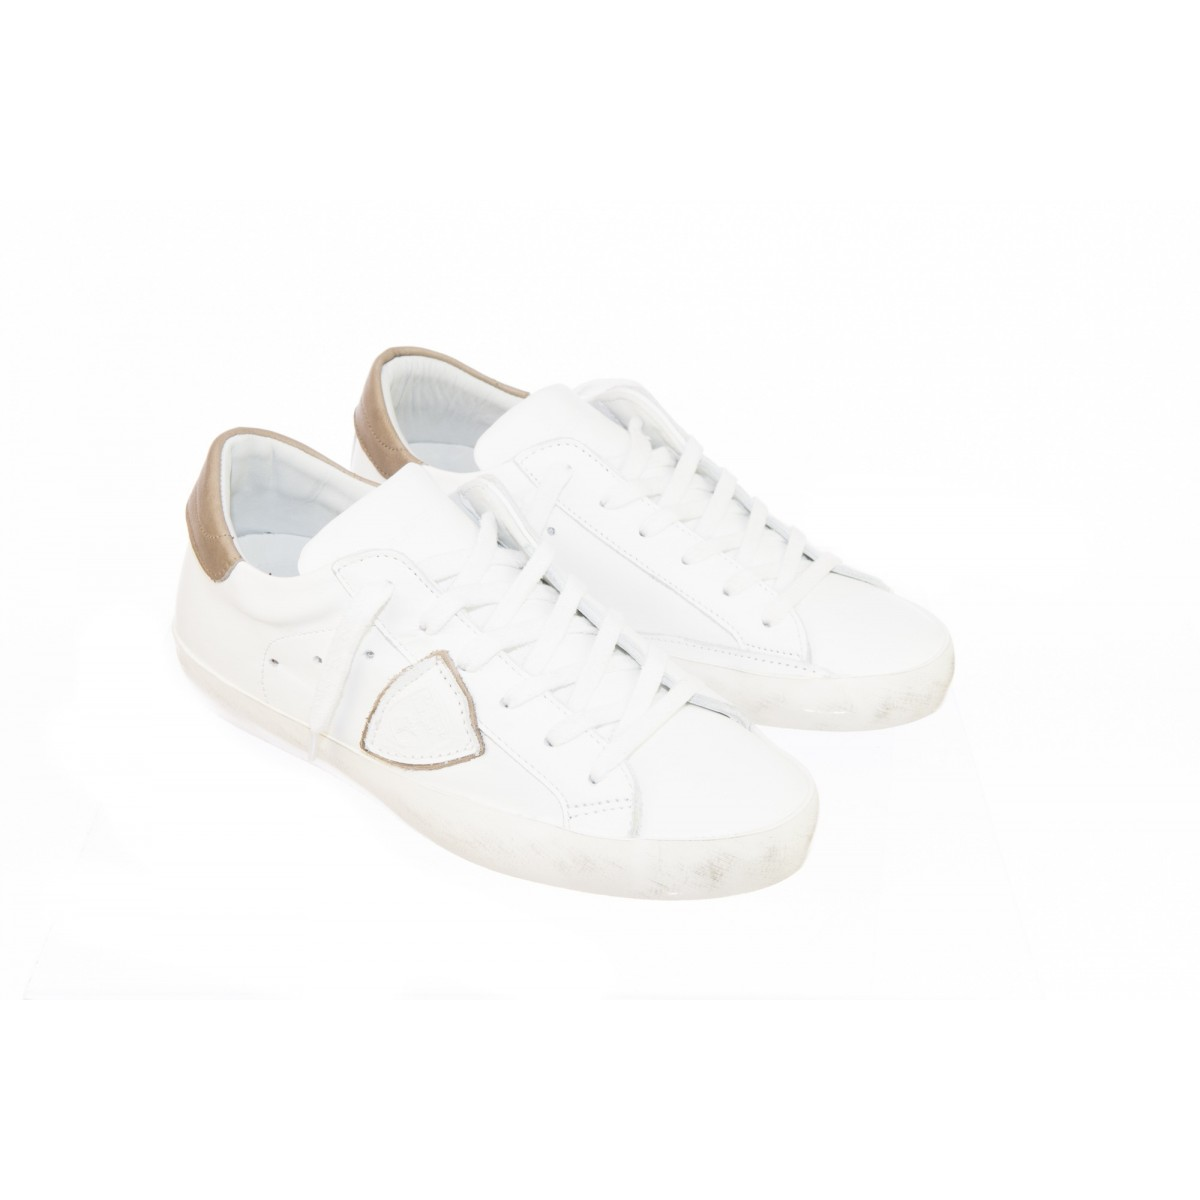 Scarpa Philippe model paris - Clld classic low veau